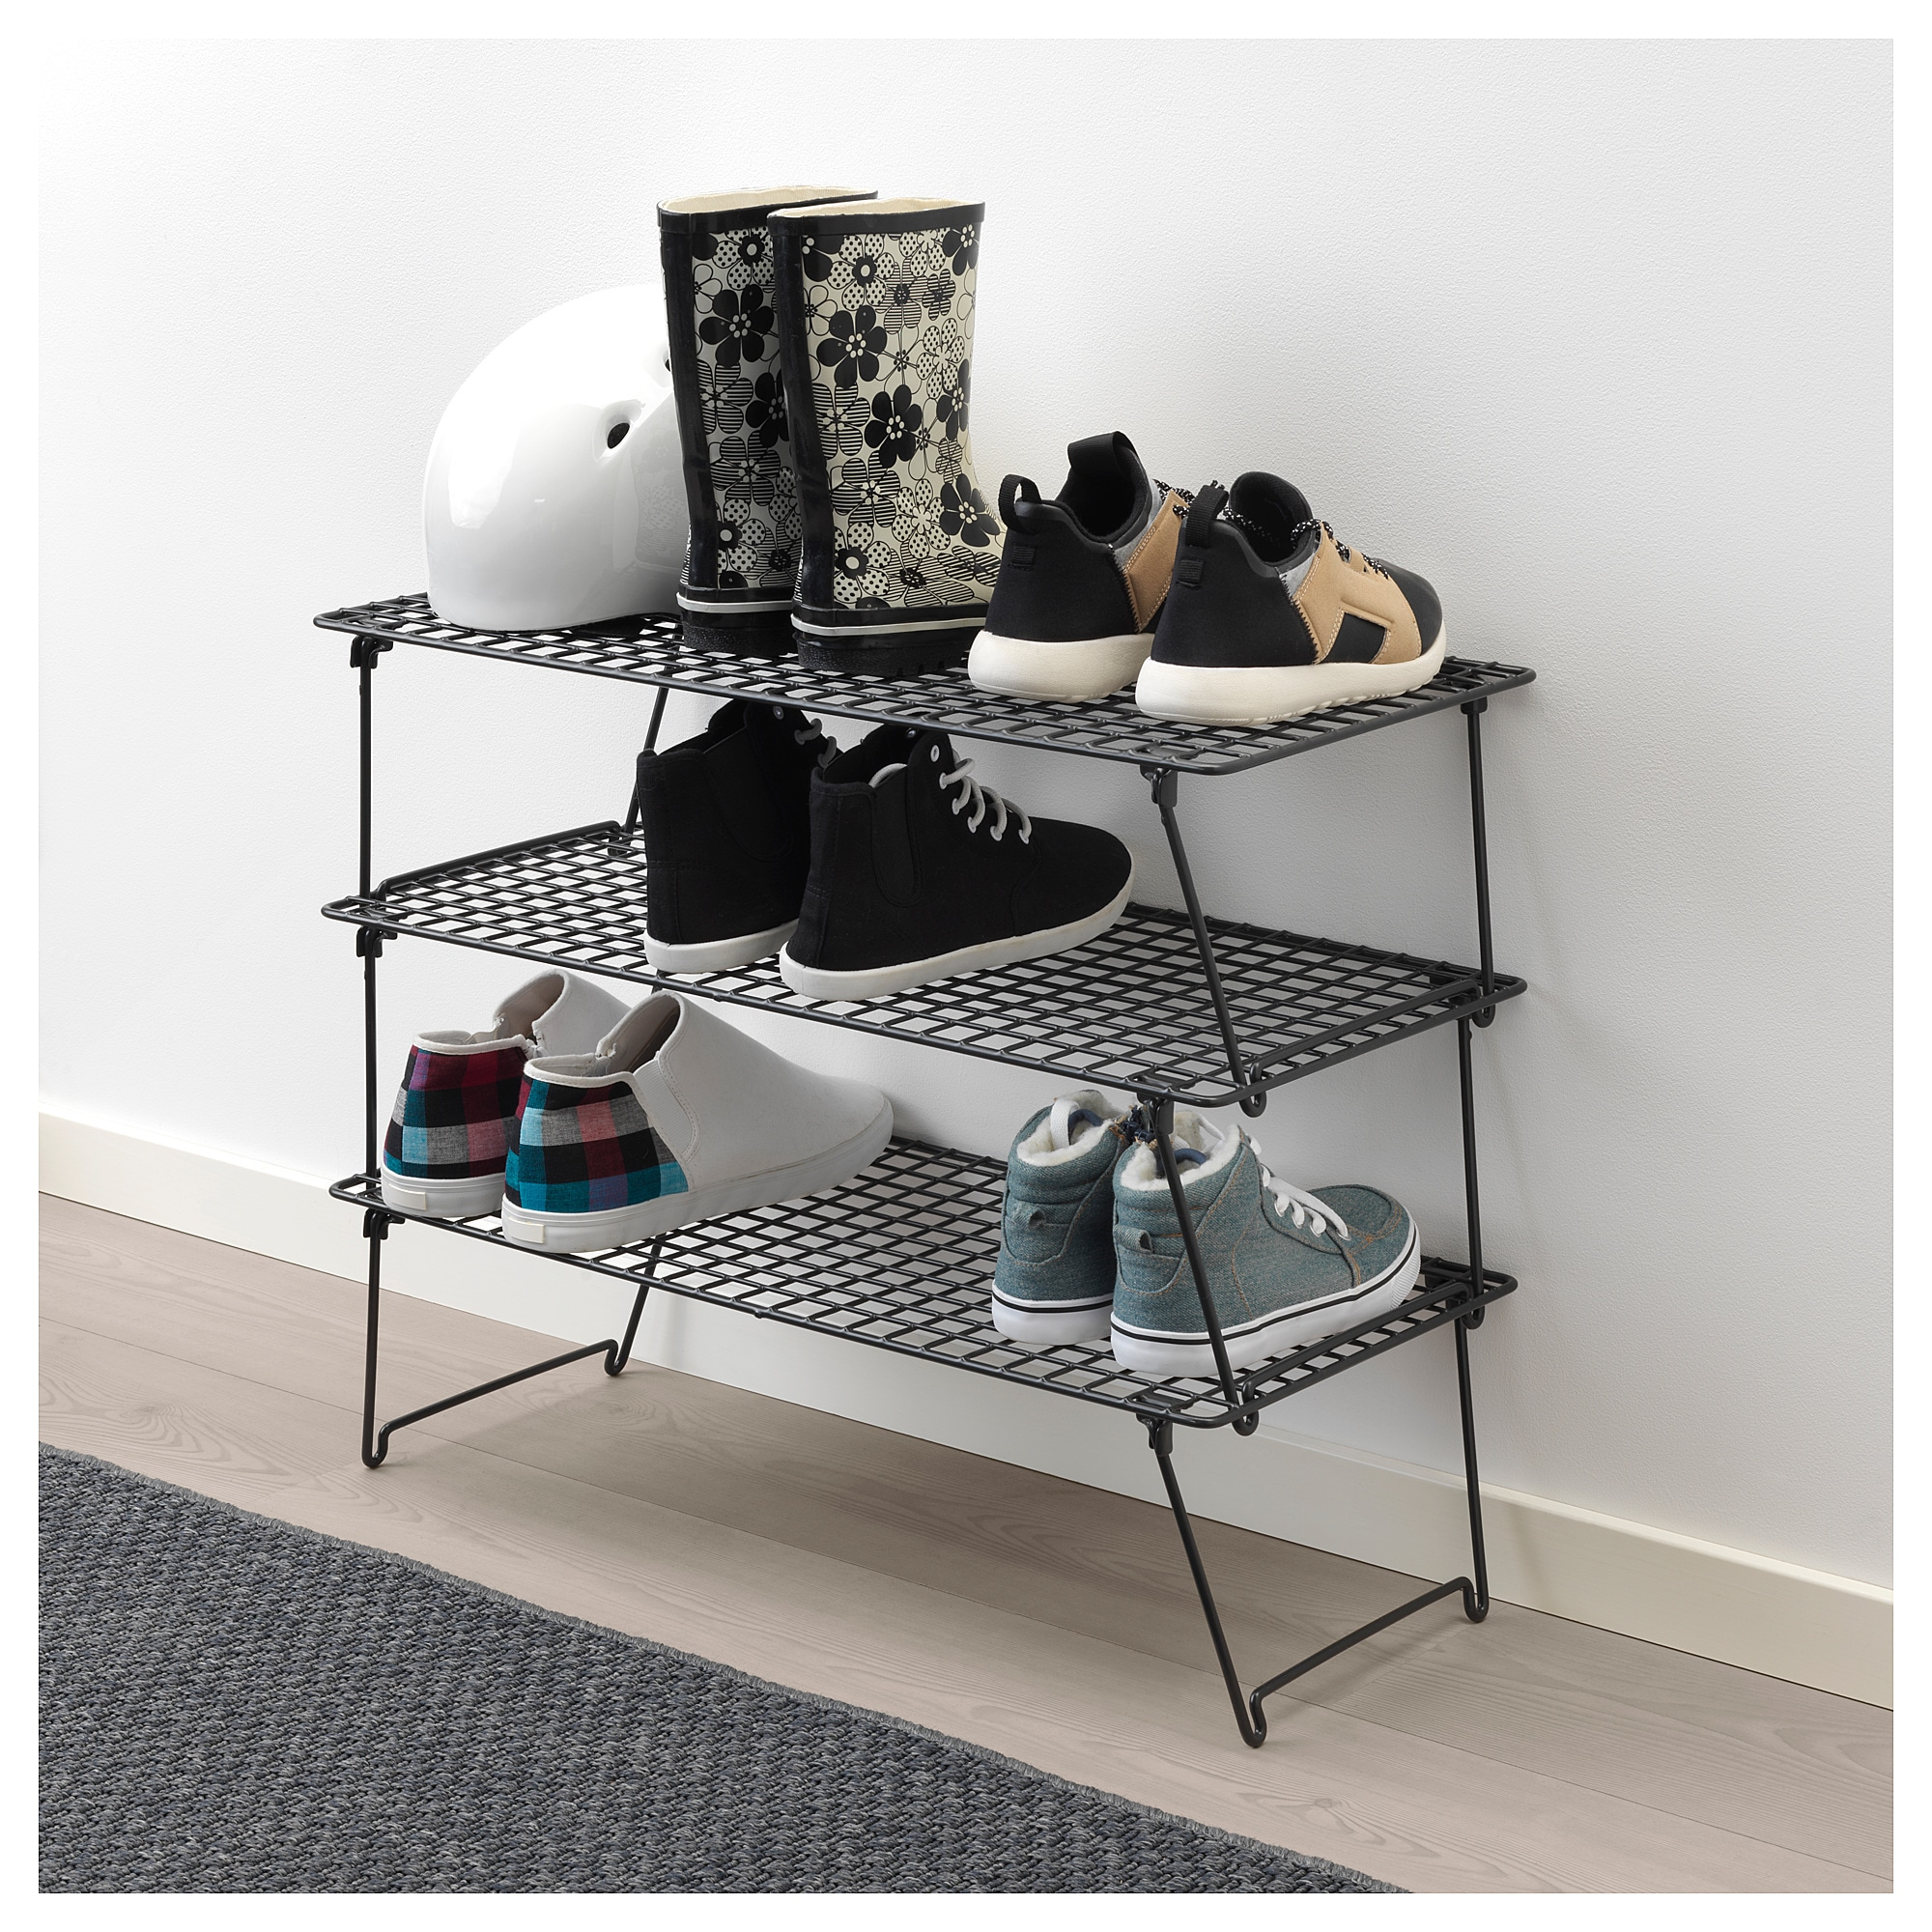 grejig shoe rack ikea - Shoe Rack Ikea